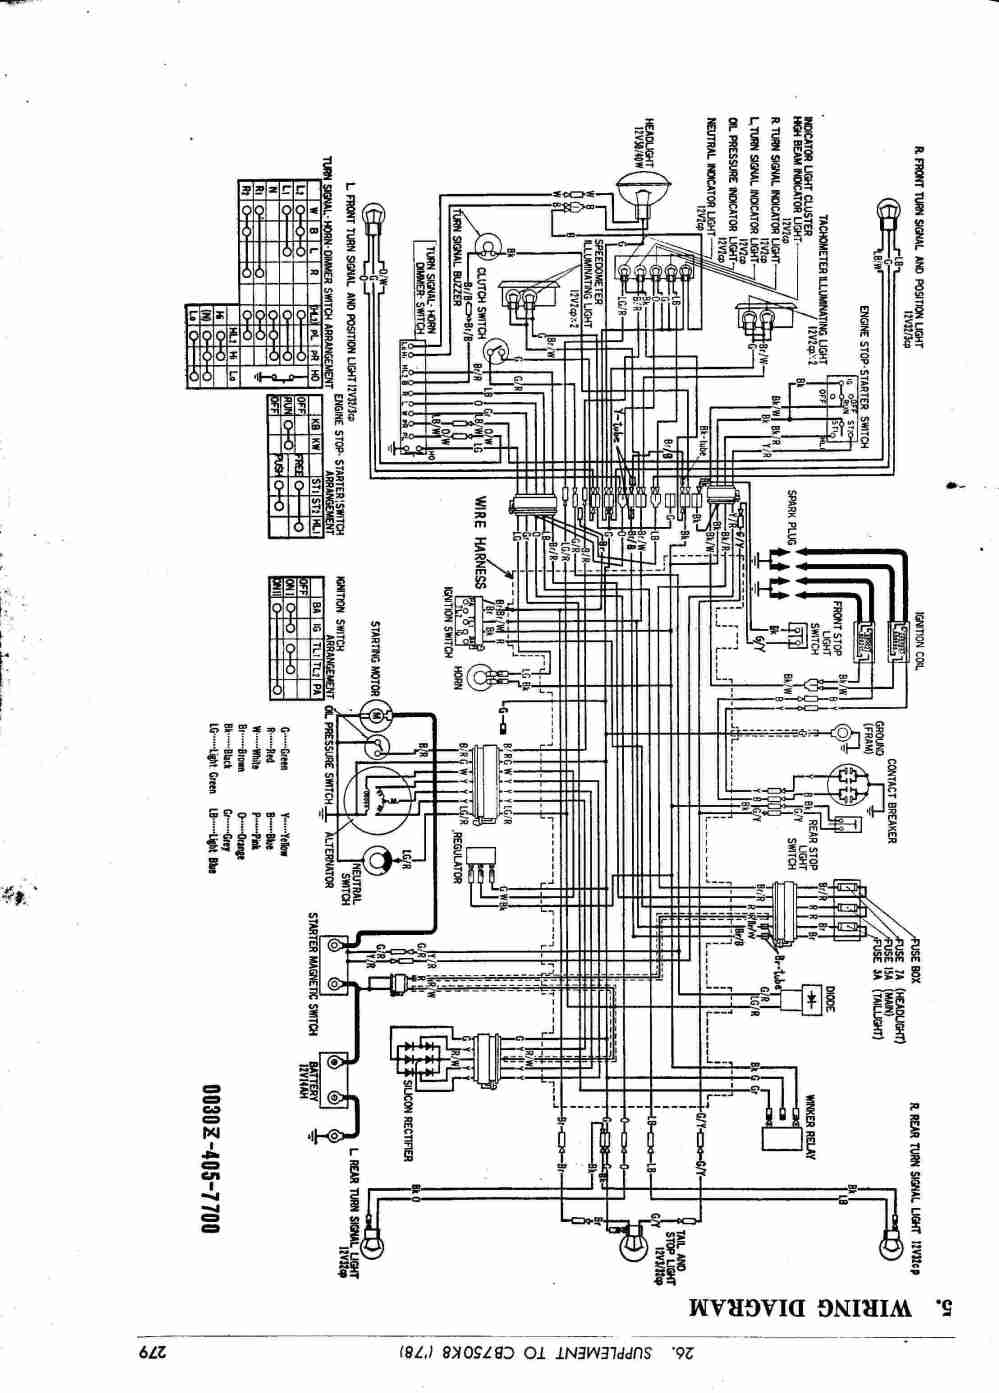 medium resolution of xs1100 wiring diagram books of wiring diagram u2022 fjr1300 wiring diagram xs1100 wiring diagram